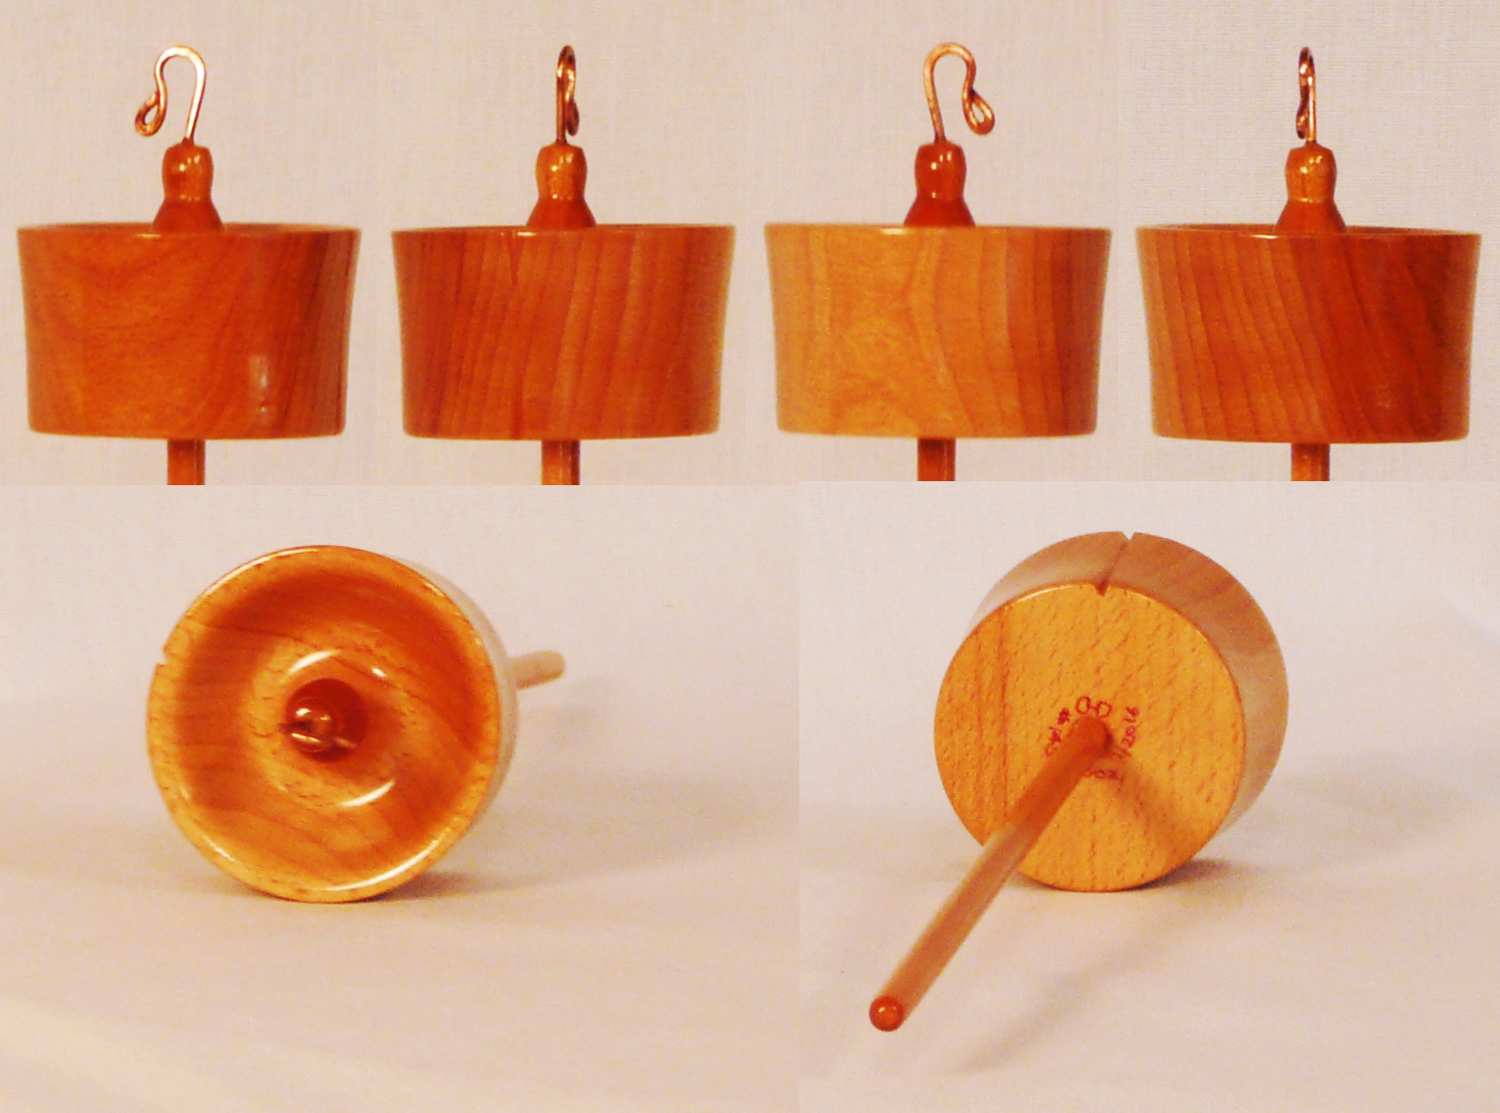 Top whorl drop spindle hand turned from Beech on a Cherry shaft 1.5 oz. by Cynthia D. Haney signed number 145